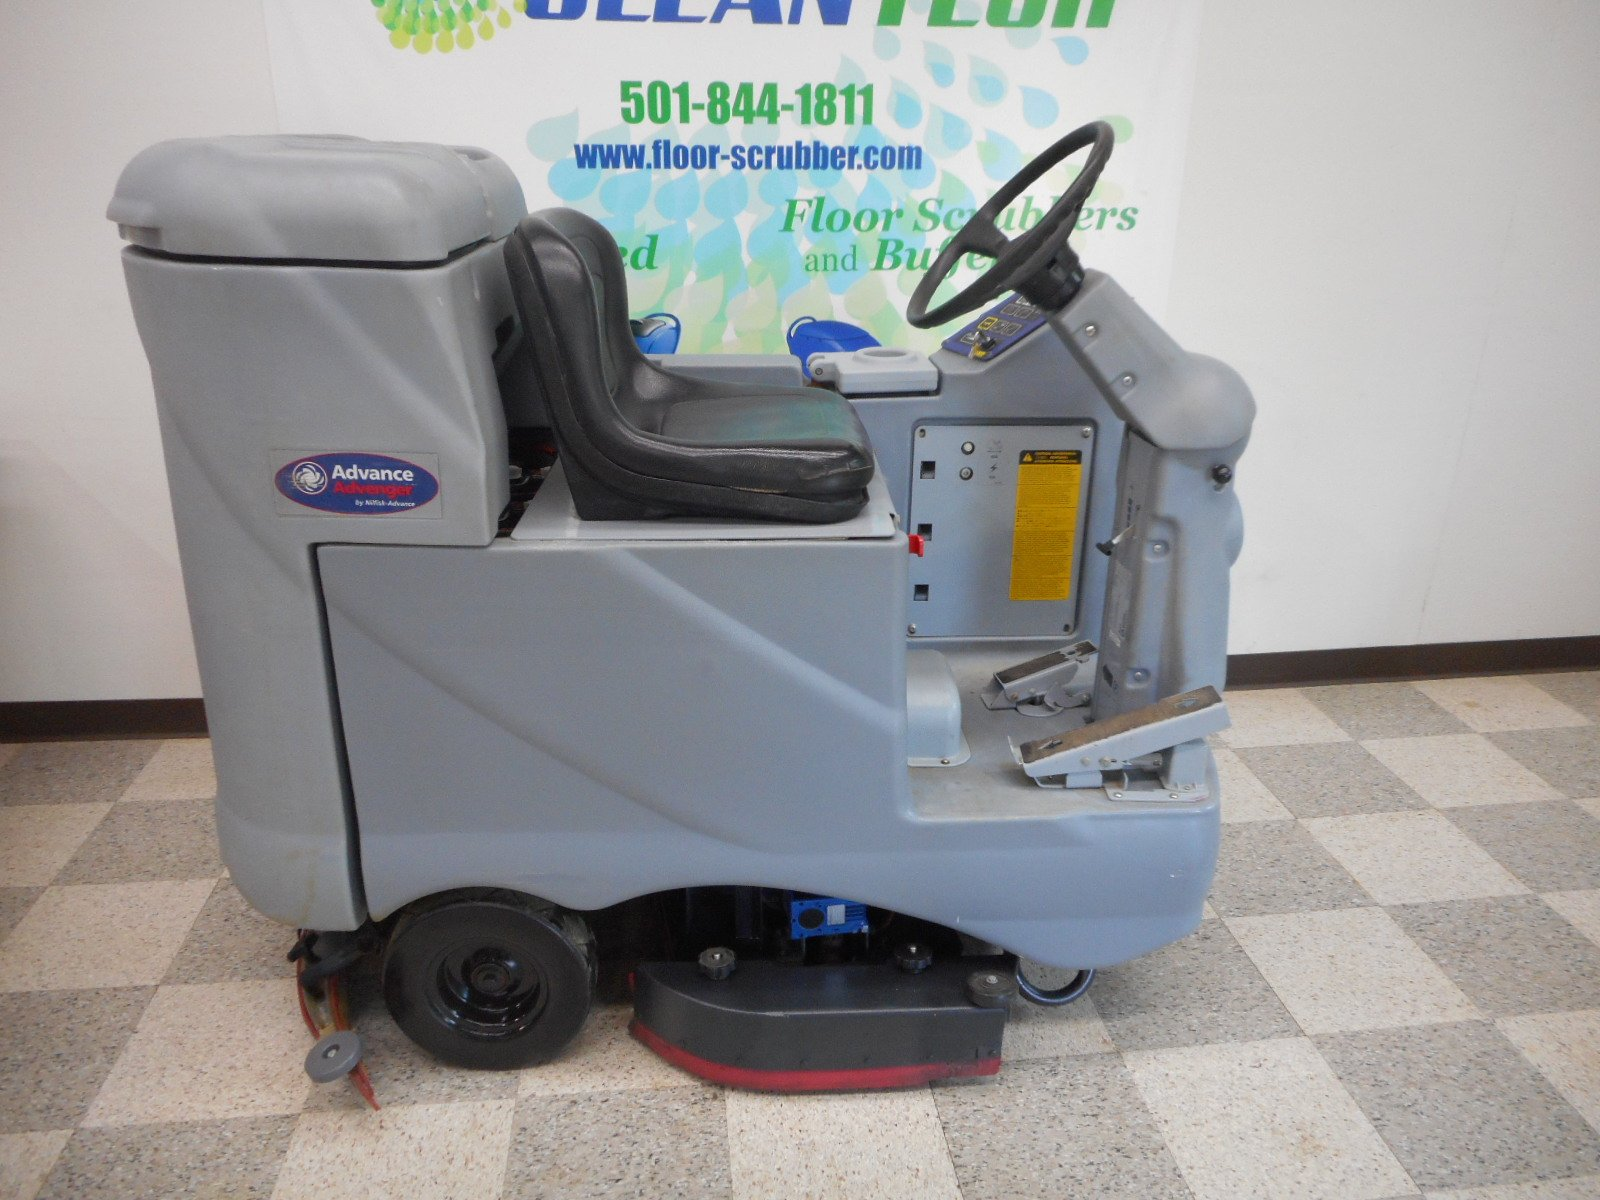 Riding Floor Scrubber For Carpet Vidalondon